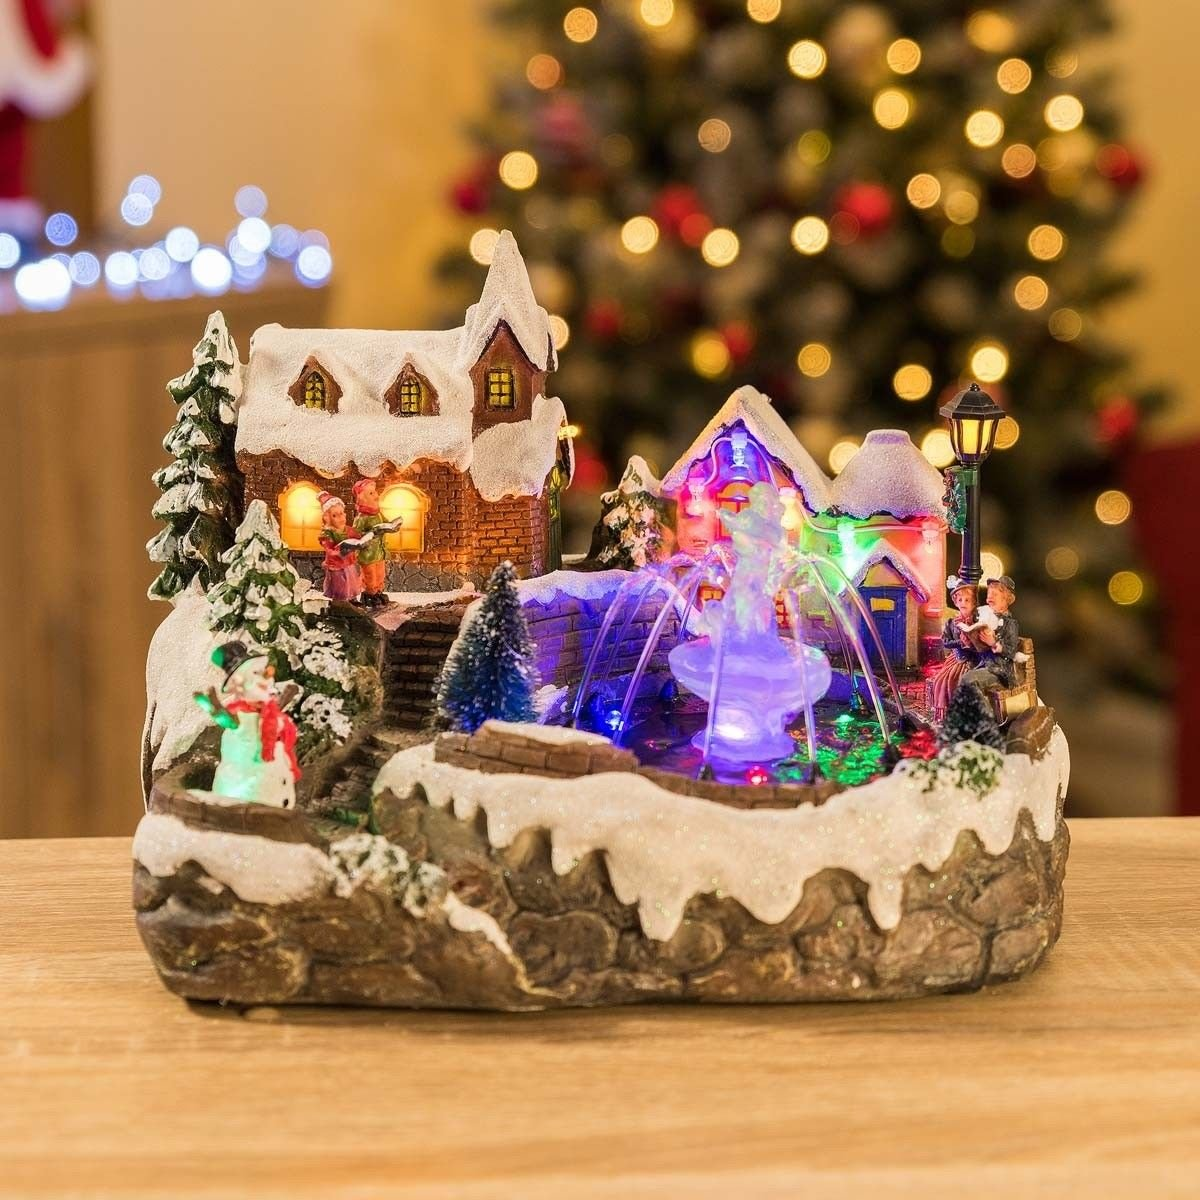 LED Christmas Water Fountain Musical Colour Changing Table Top Village Scene by Christow Decorations